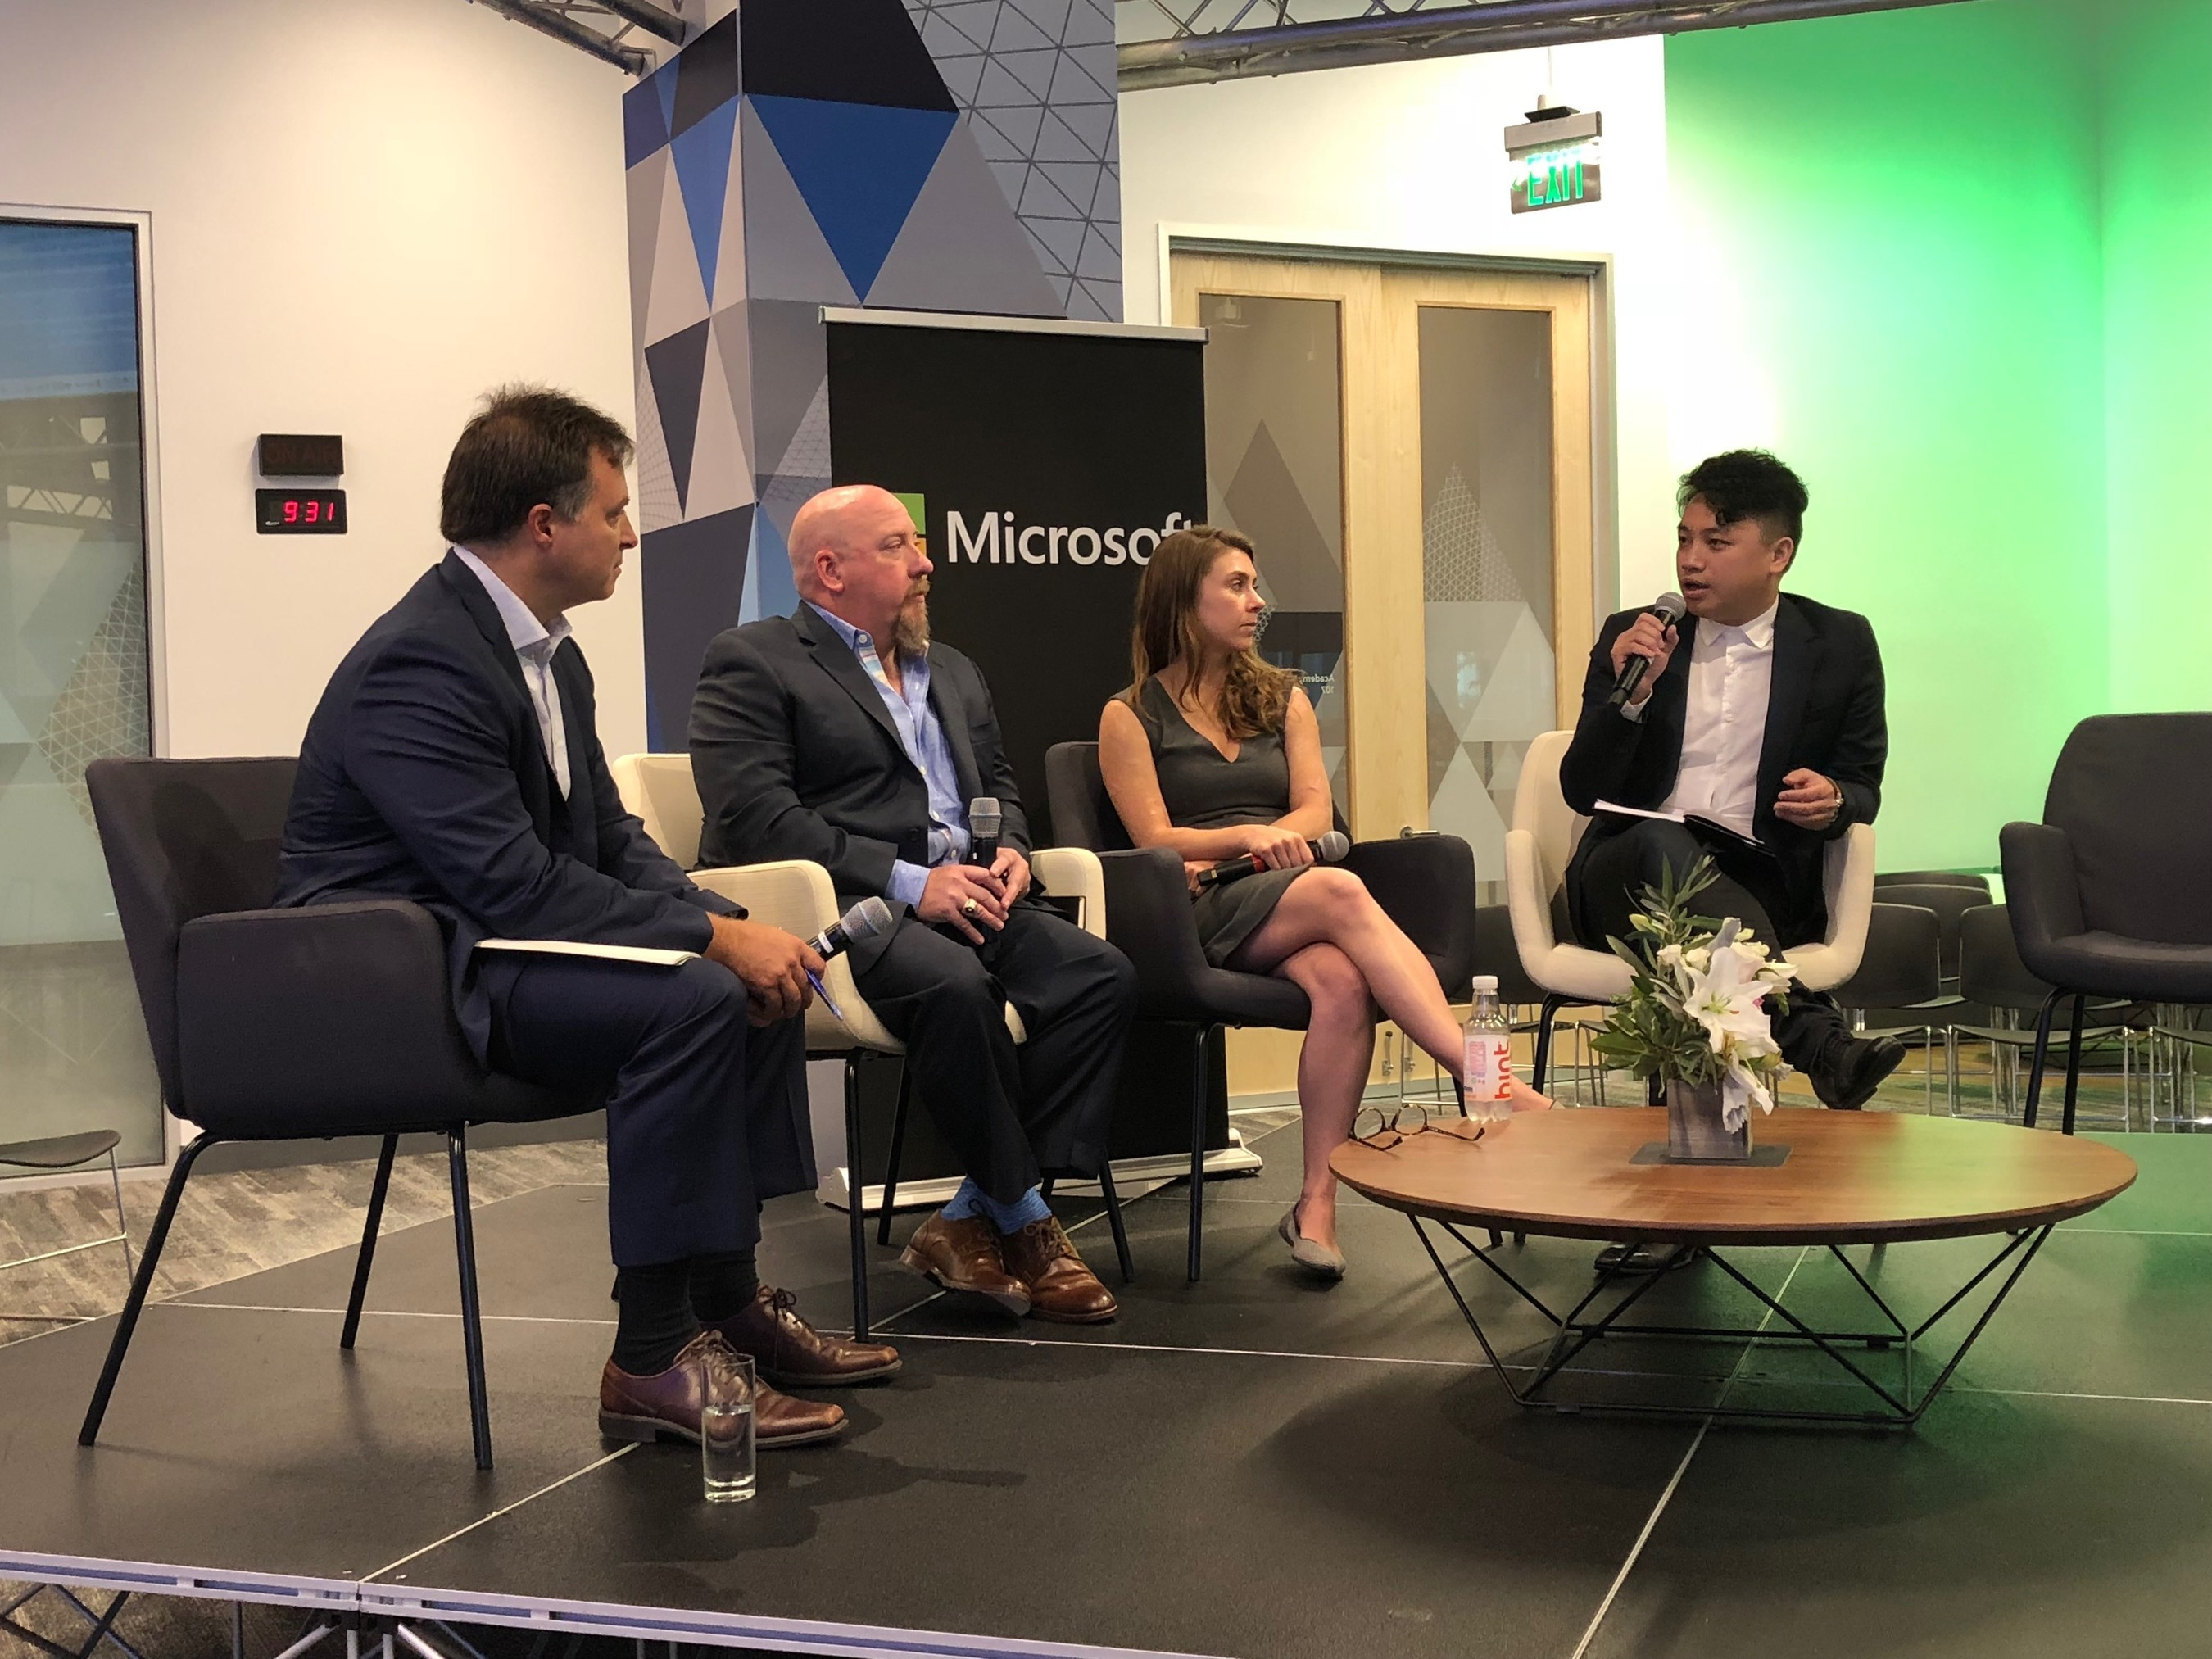 Remi Lee, TCI's Chief Sustainability Officer, shared their progress on the growth of renewable energy in Taiwan at the 2018 Global Climate Action Summit in San Francisco.